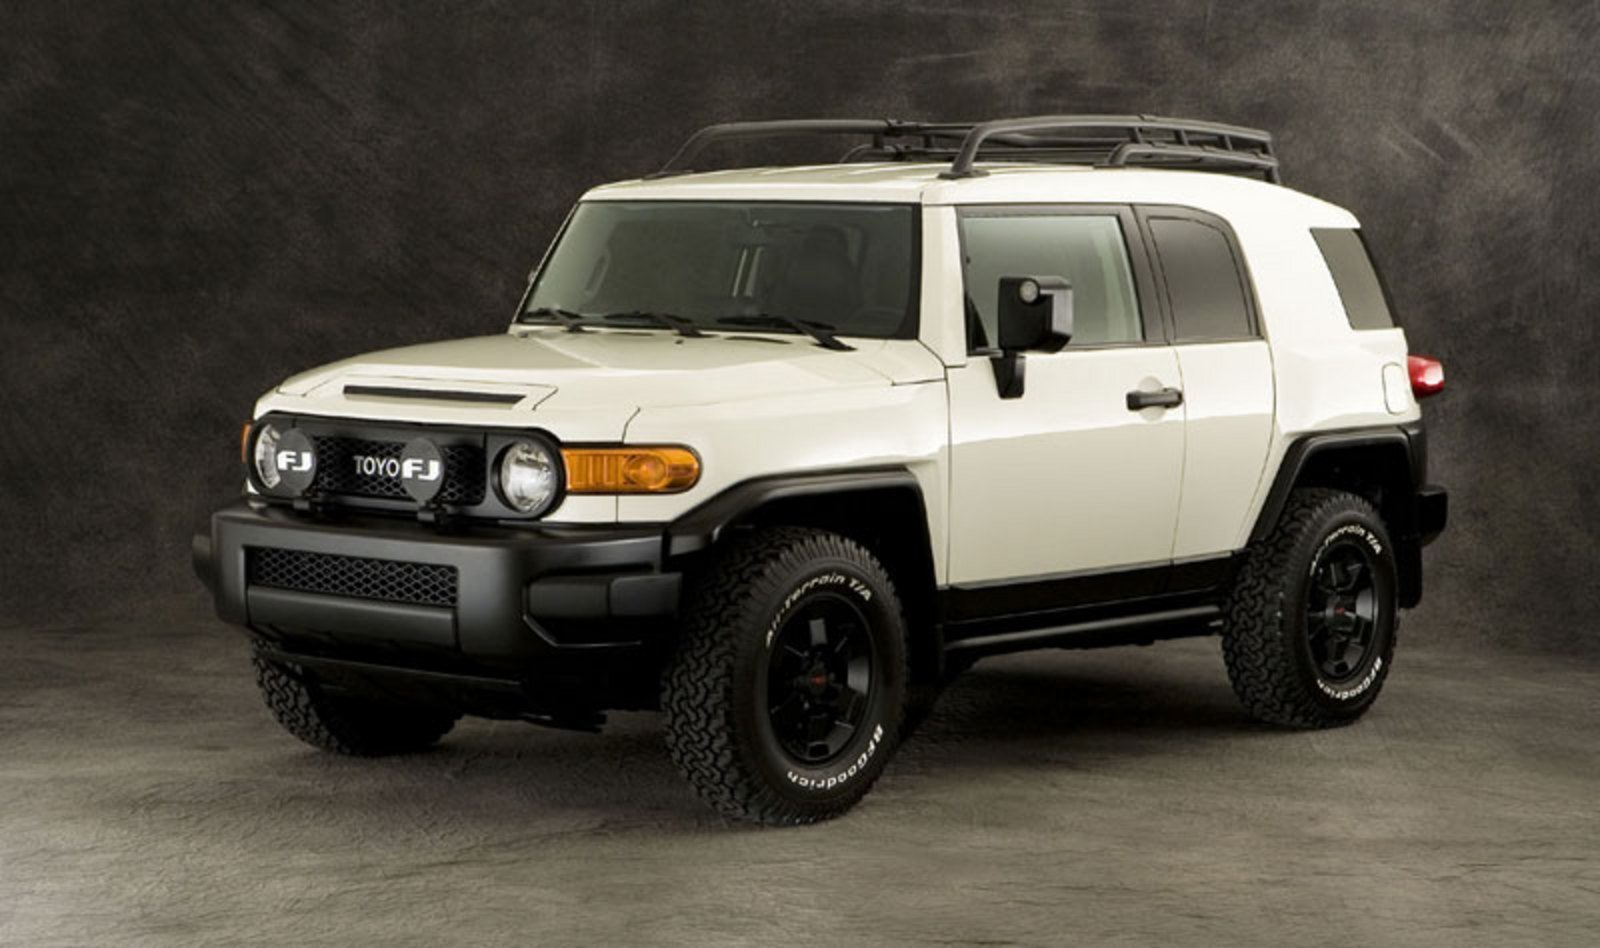 2008 toyota fj cruiser trails team edition review top speed. Black Bedroom Furniture Sets. Home Design Ideas